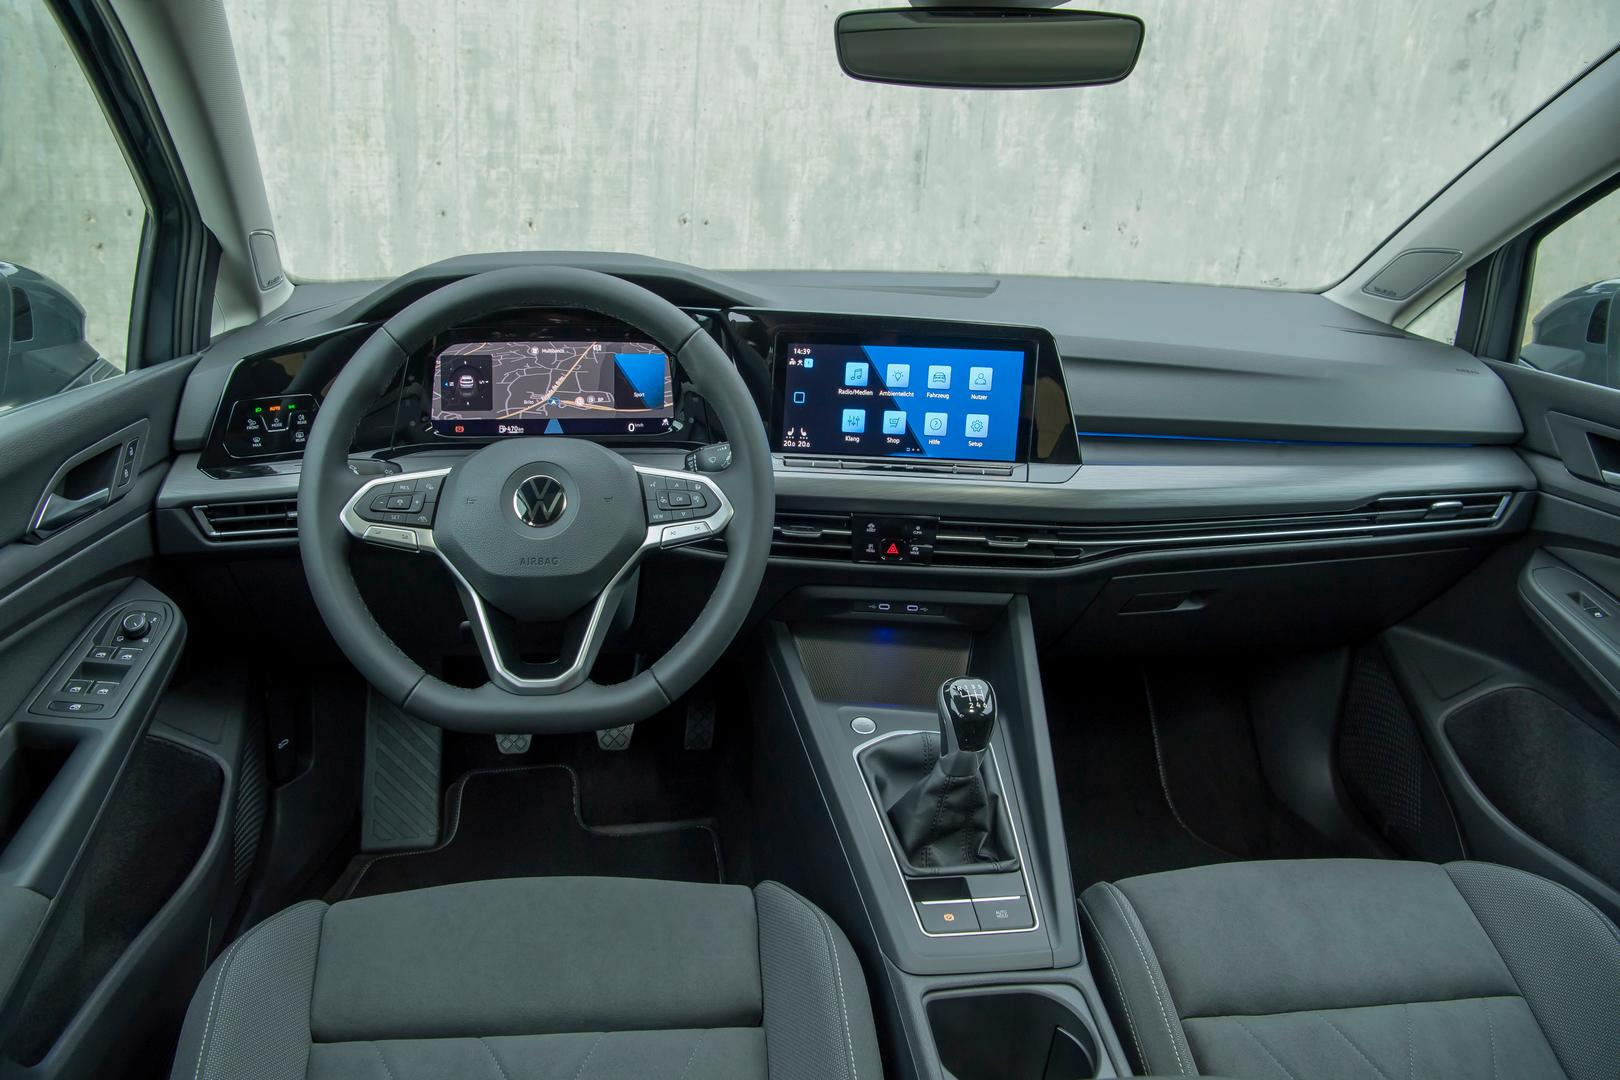 2020 VW Golf 8 Cockpit